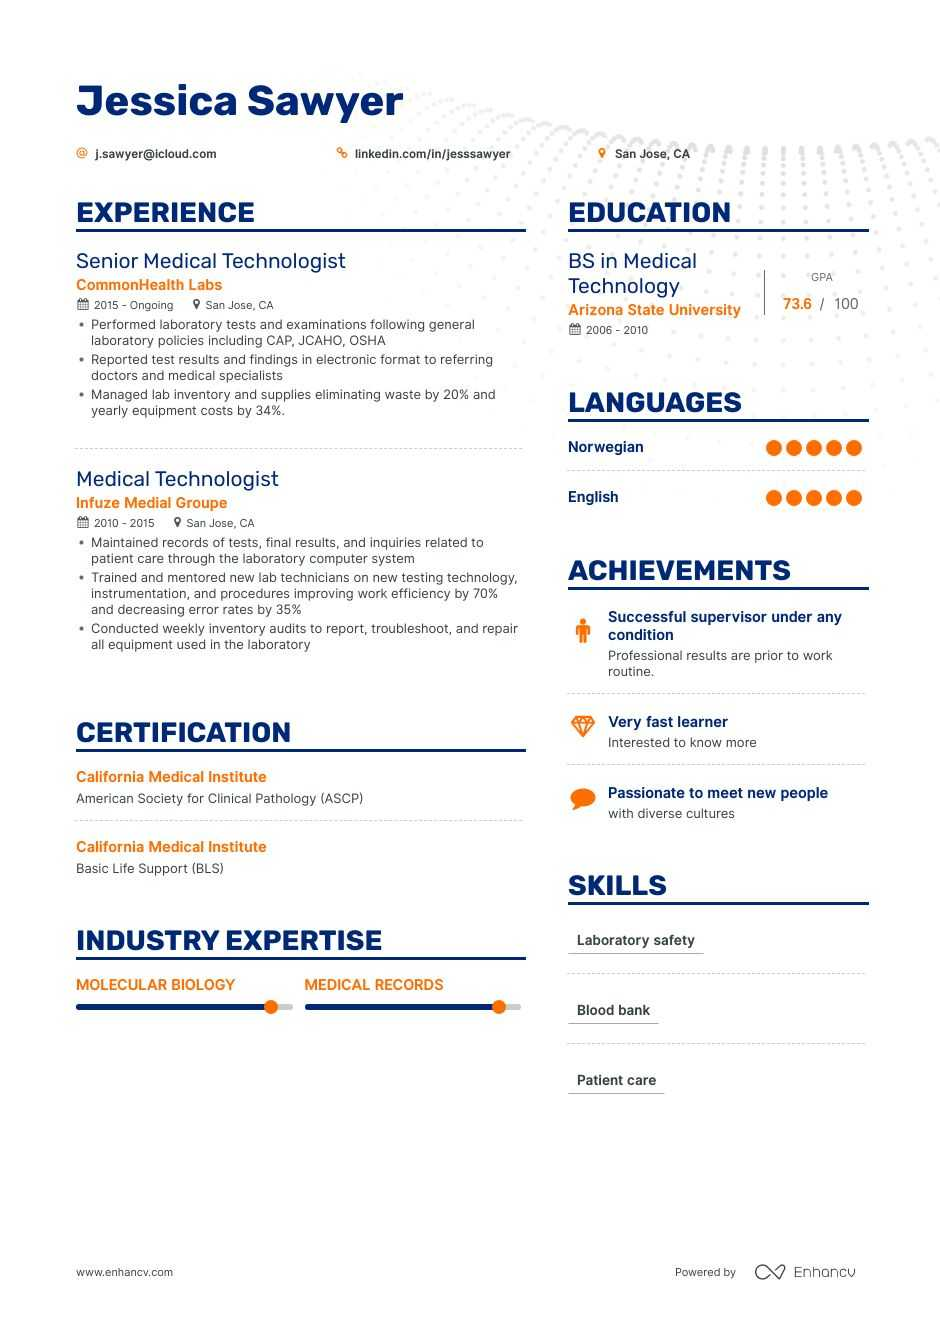 medical technologist resume guide examples fresh graduate generated good for tmobile Resume Medical Technologist Resume Fresh Graduate